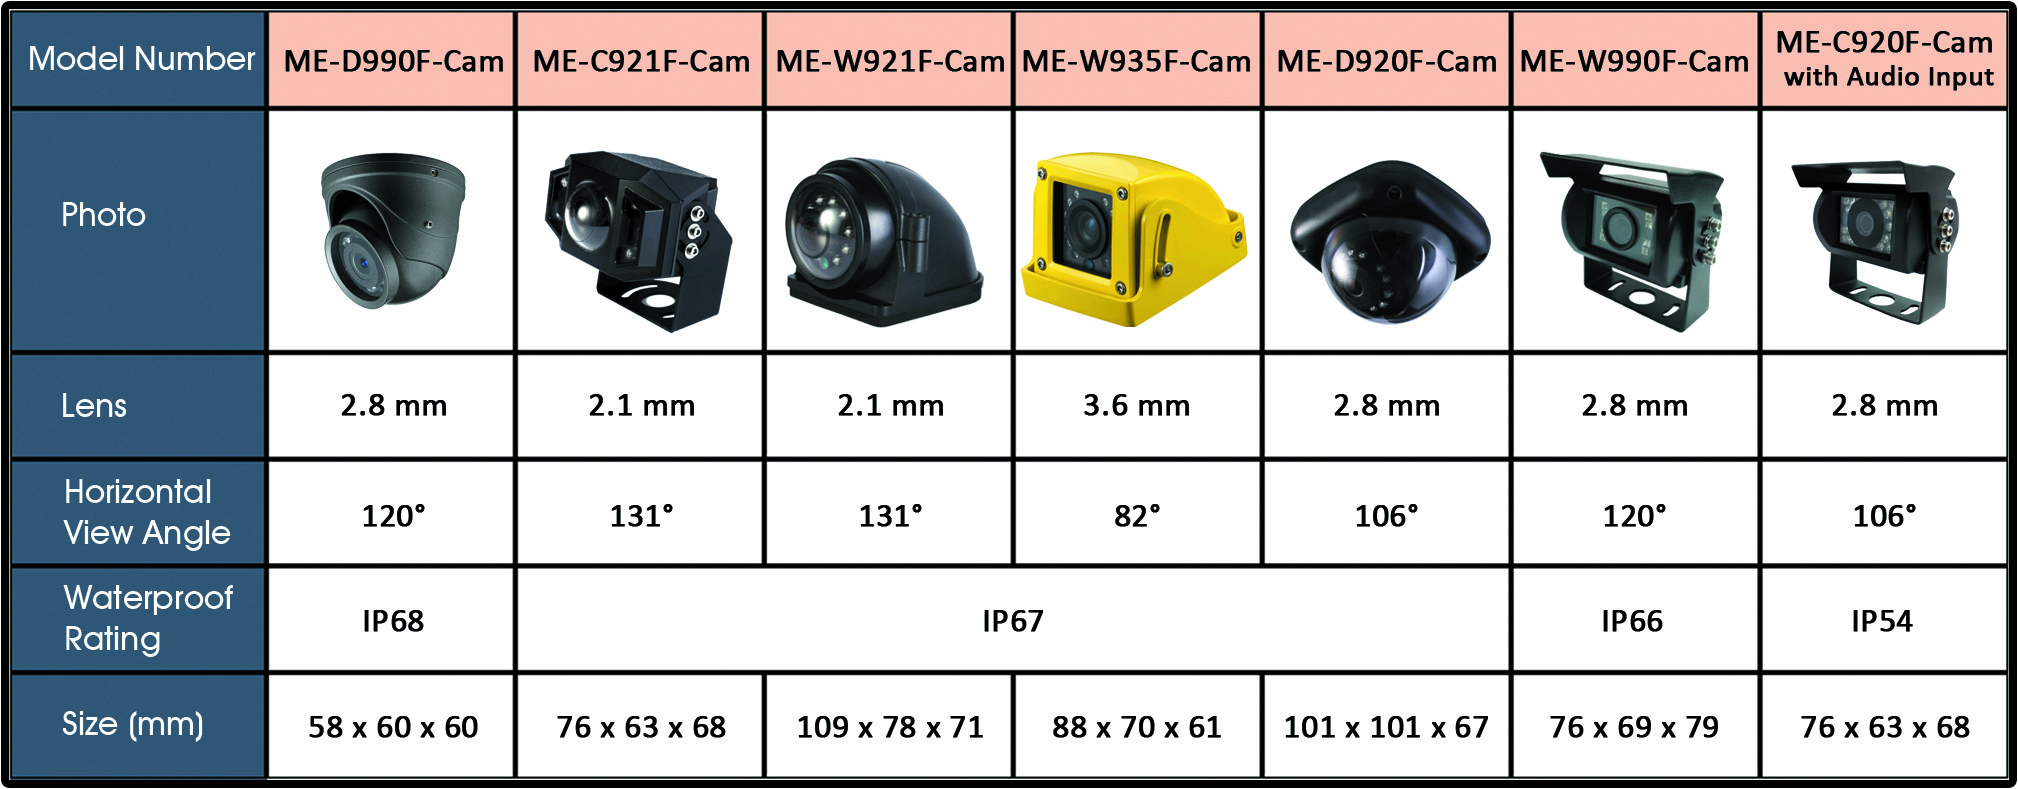 DigiMobi Technology Limited - Motion-Eye Vehicle CCTV (1080p